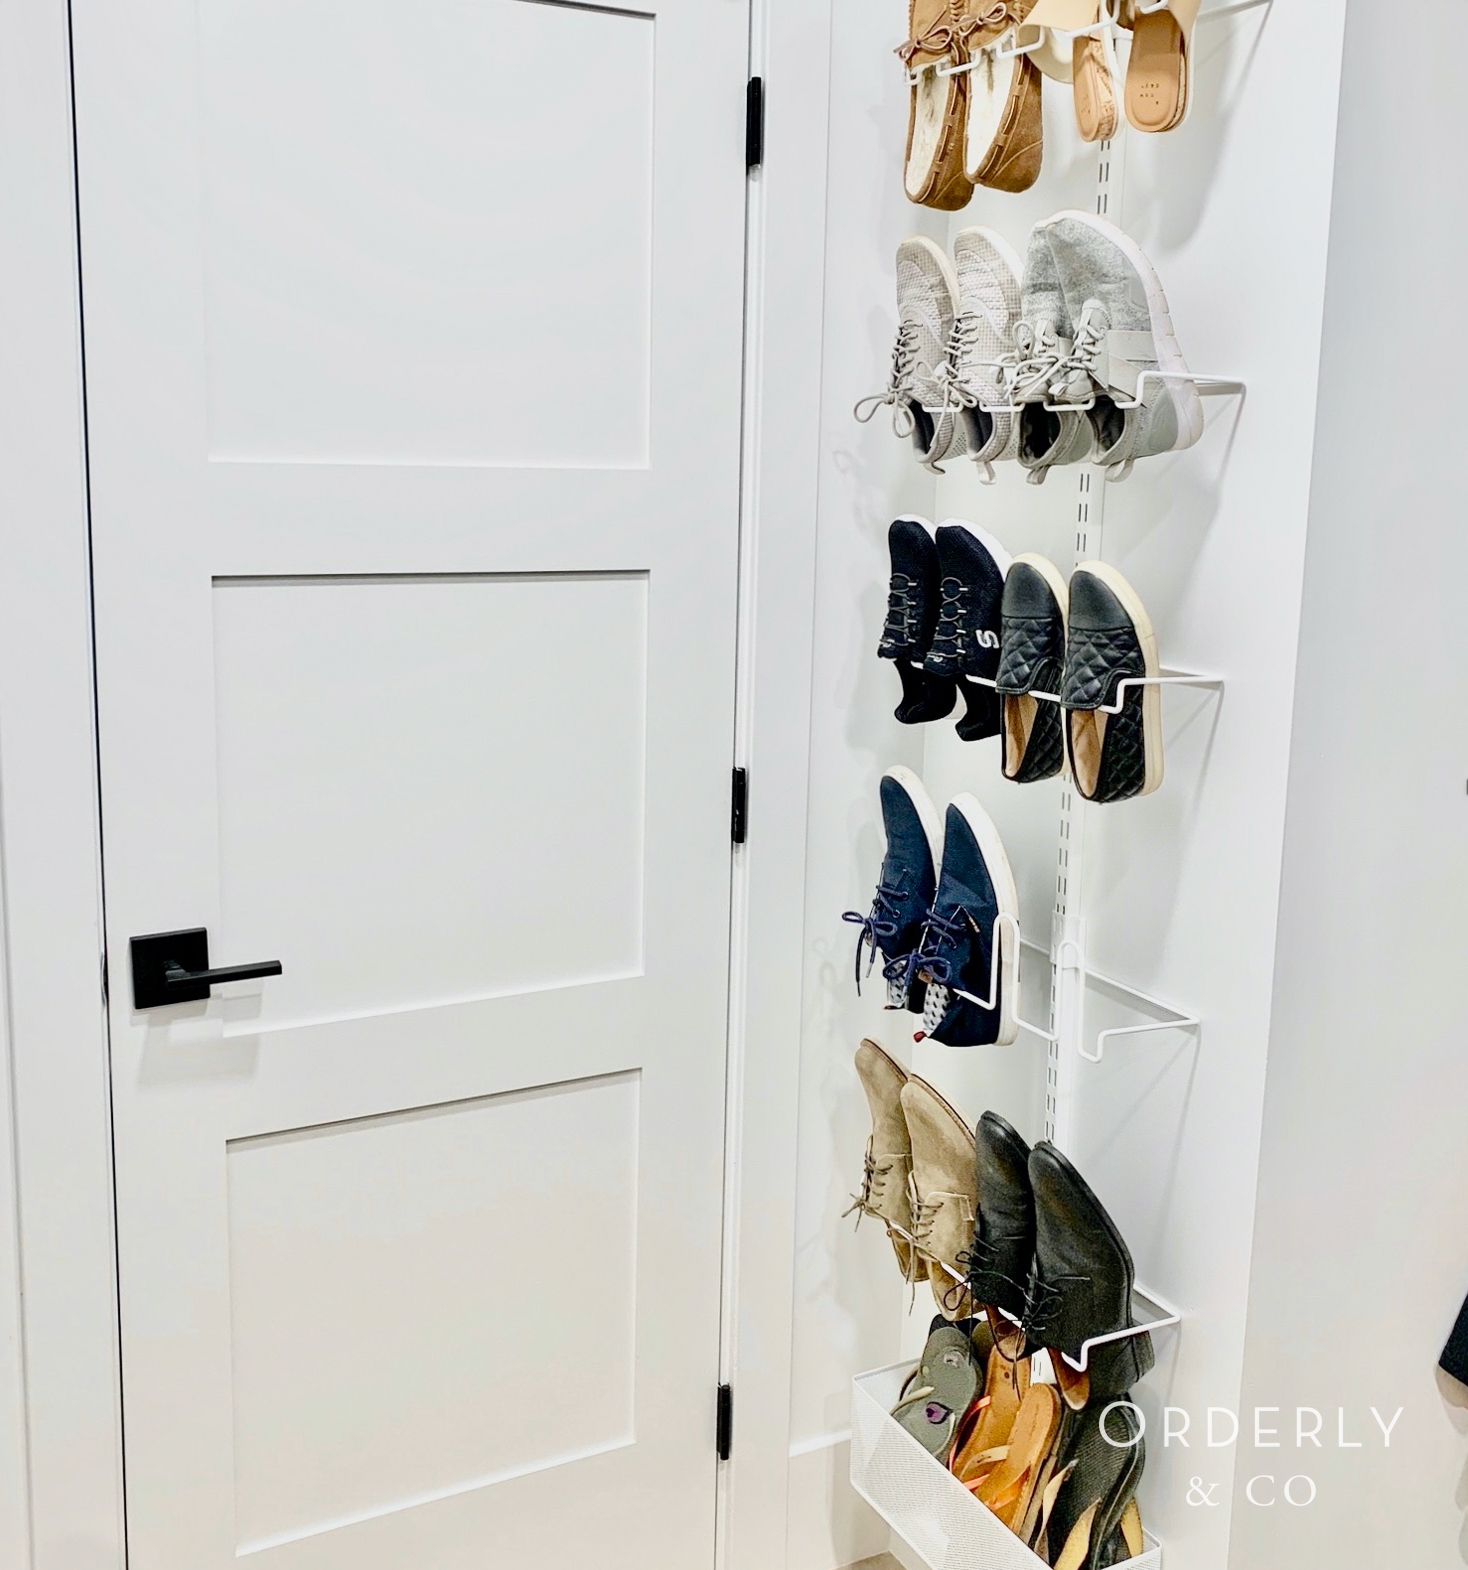 Utilizing the back of a door for more storage space is a good idea